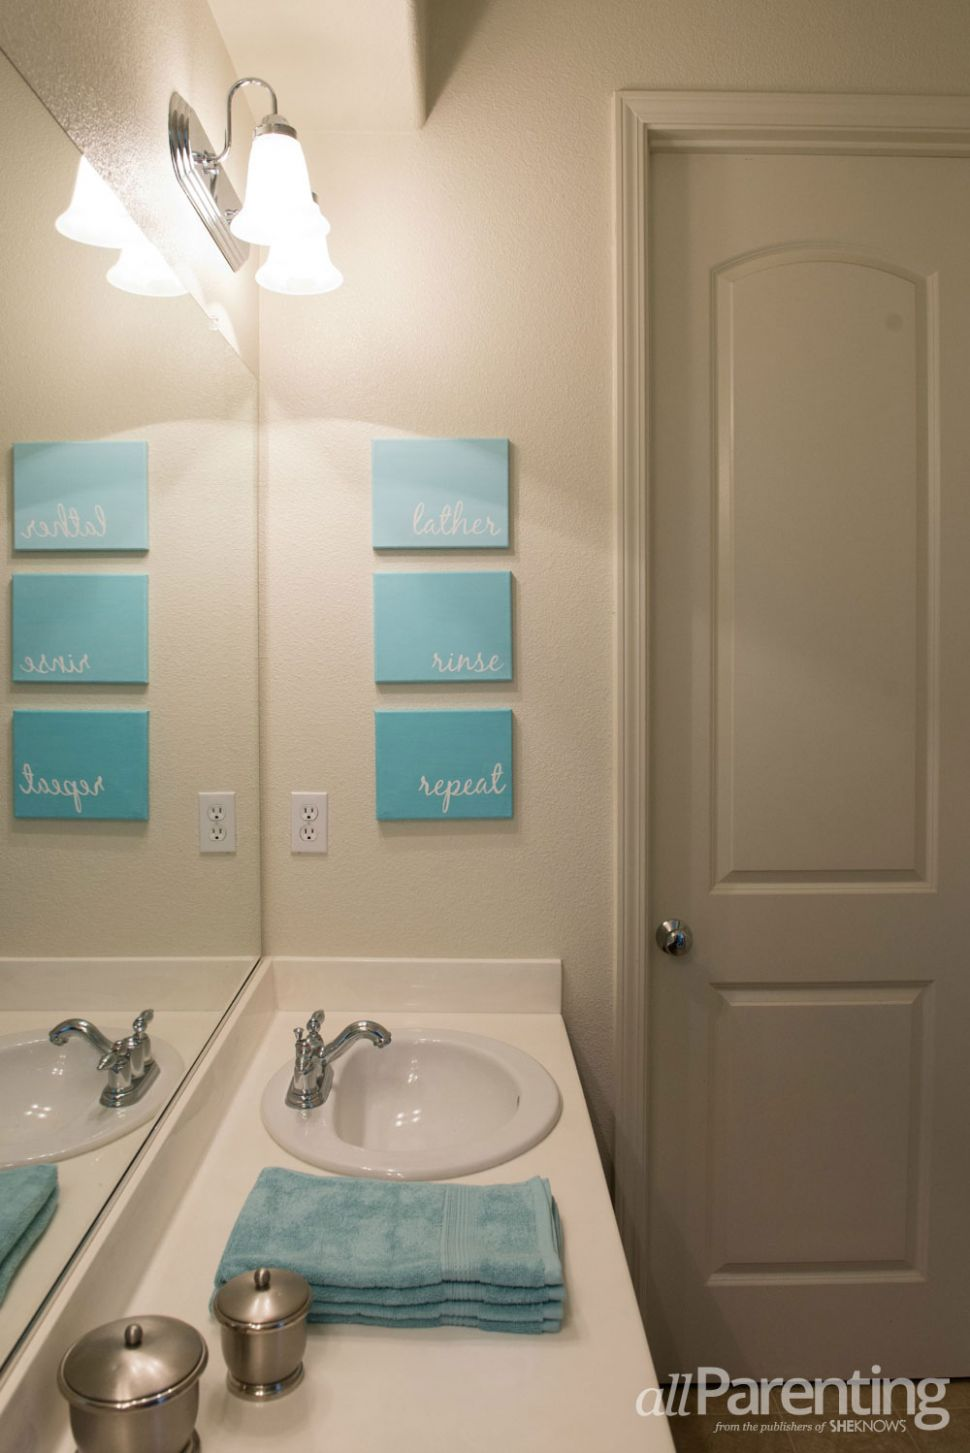 Art for bathroom Etsy Allparenting Diy Bathroom Canvas Art ..